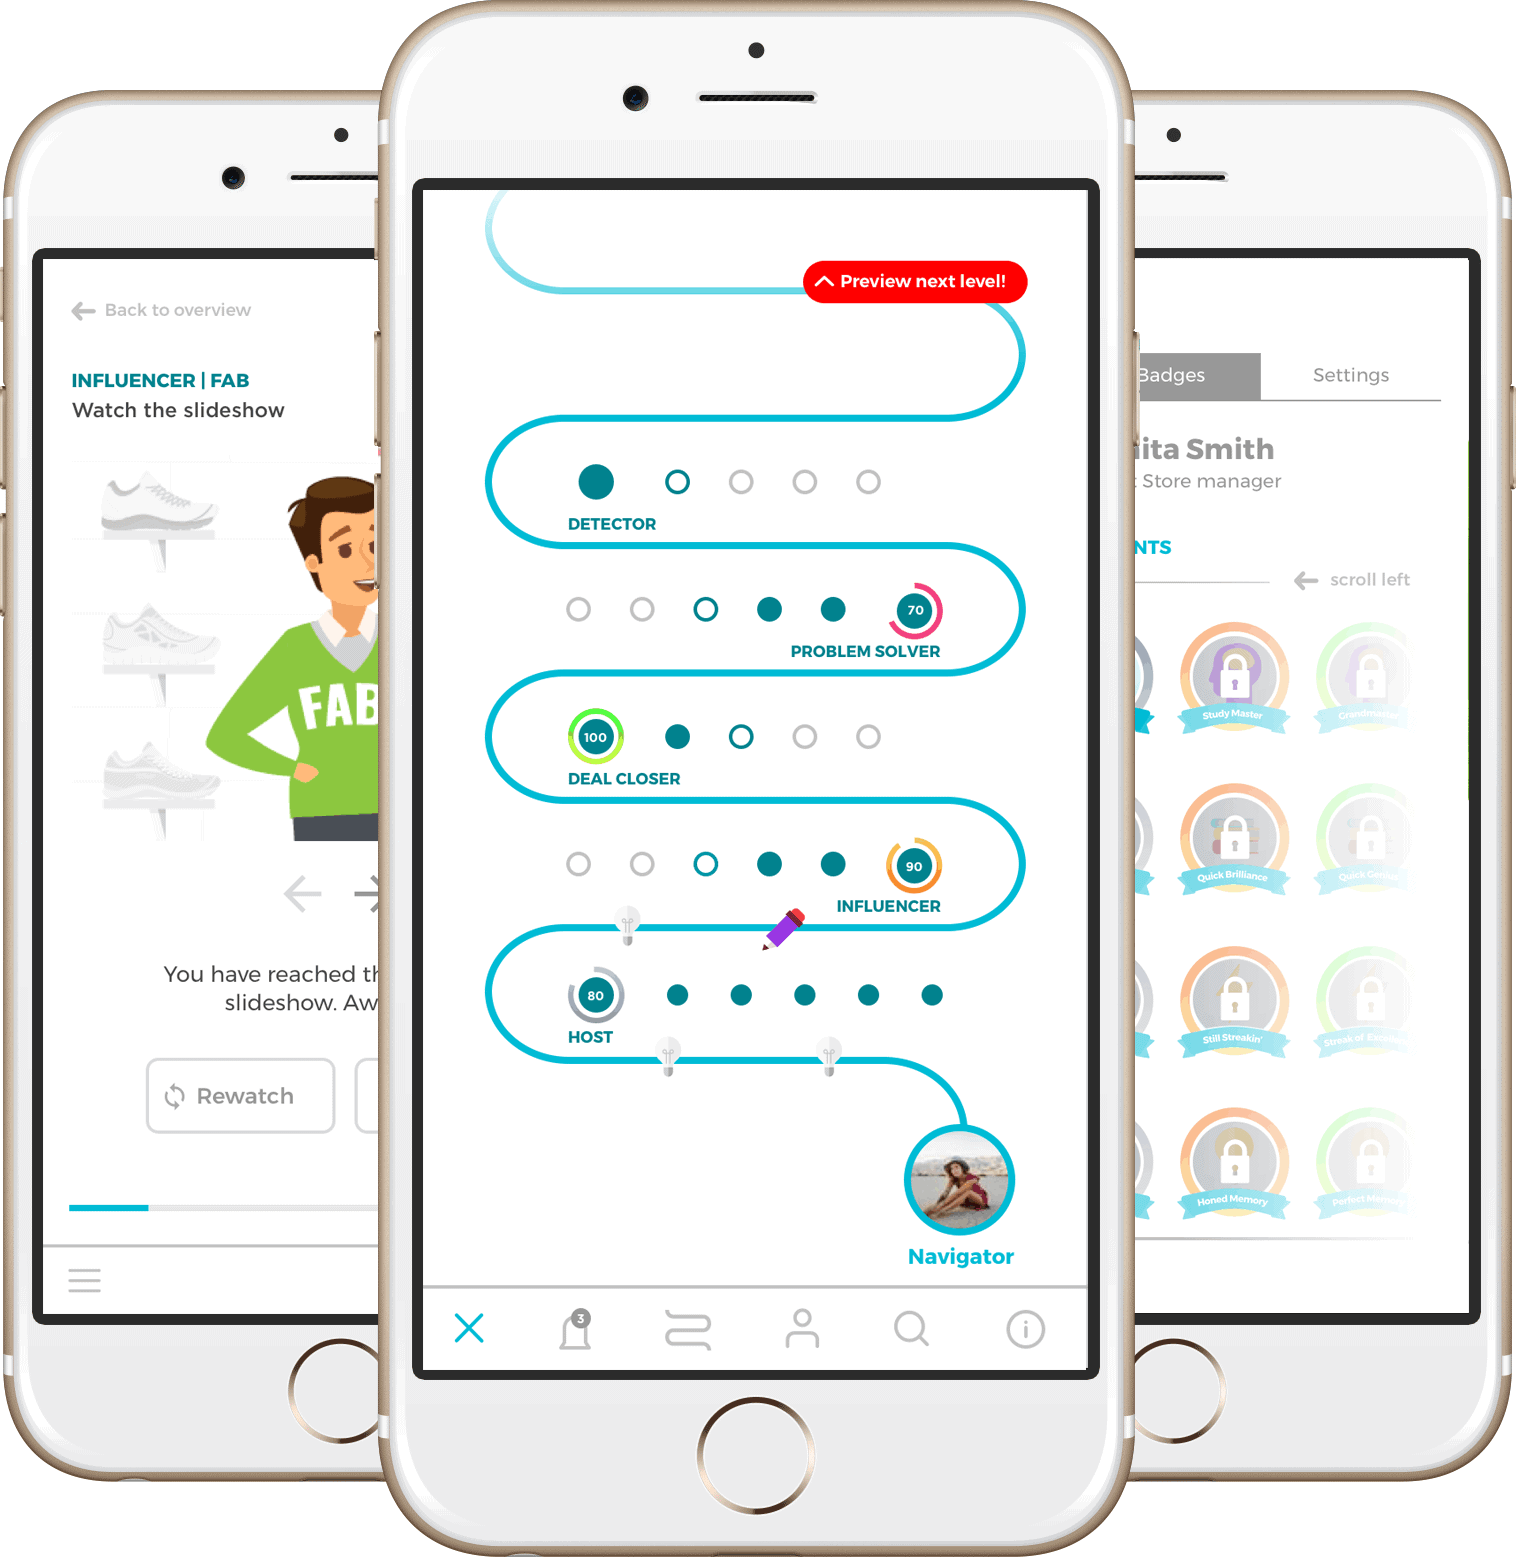 Mobile microlearning platform MobieTrain